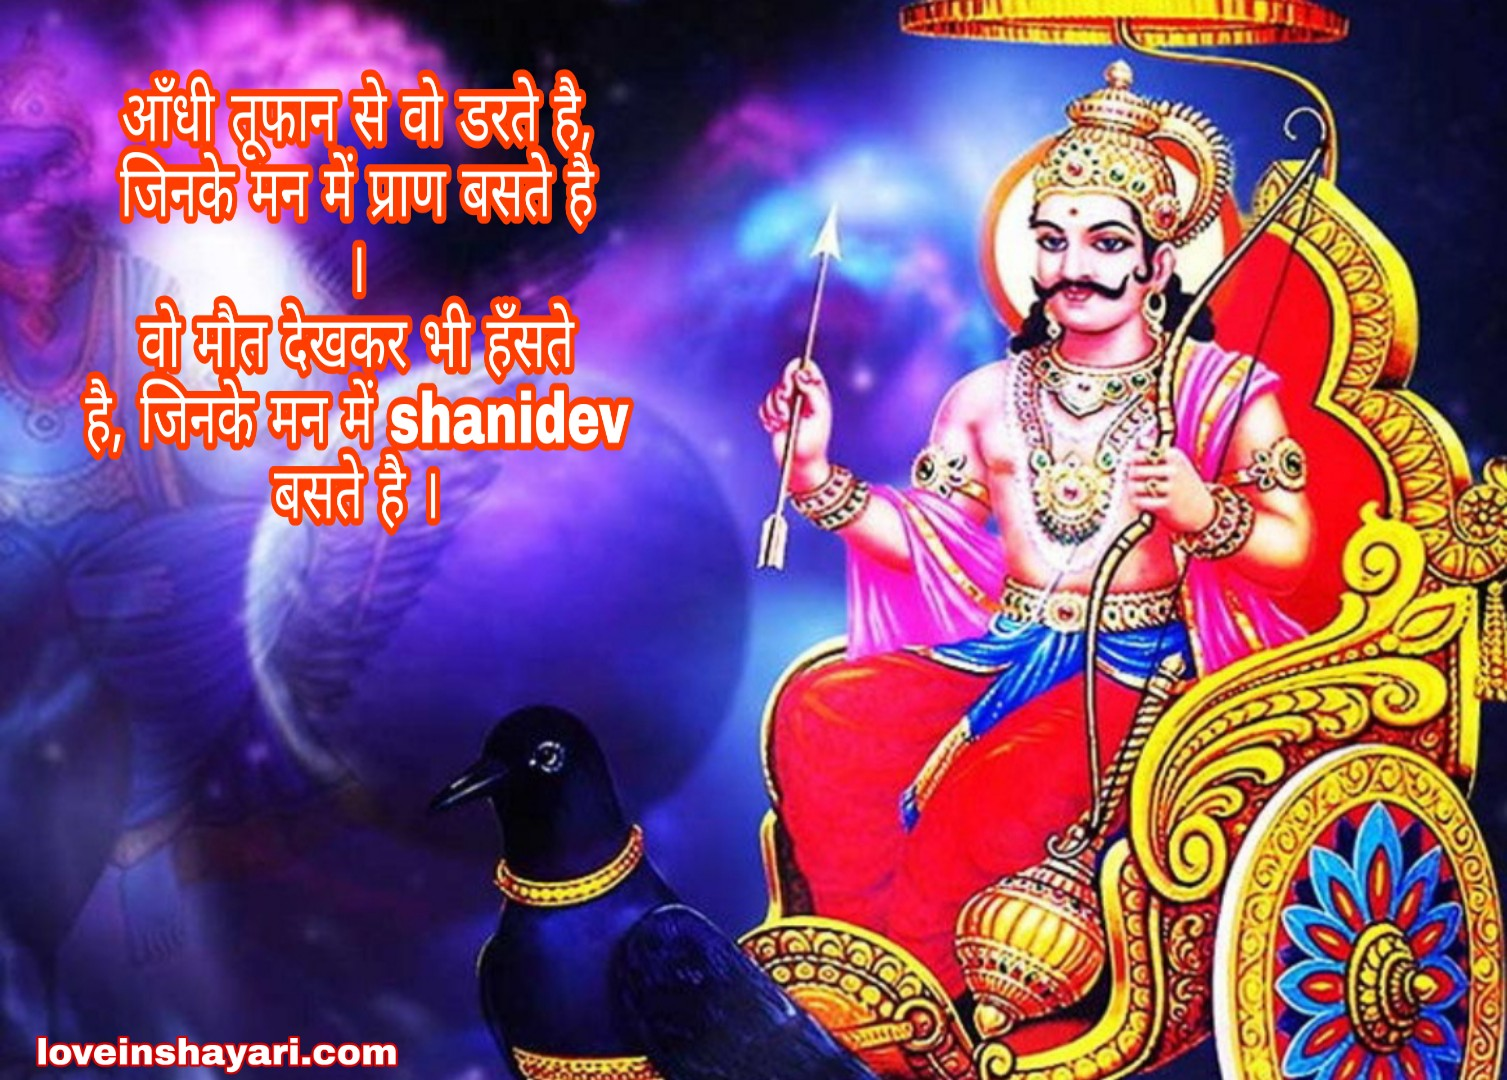 Shani jayanti wishes shayari quotes messages